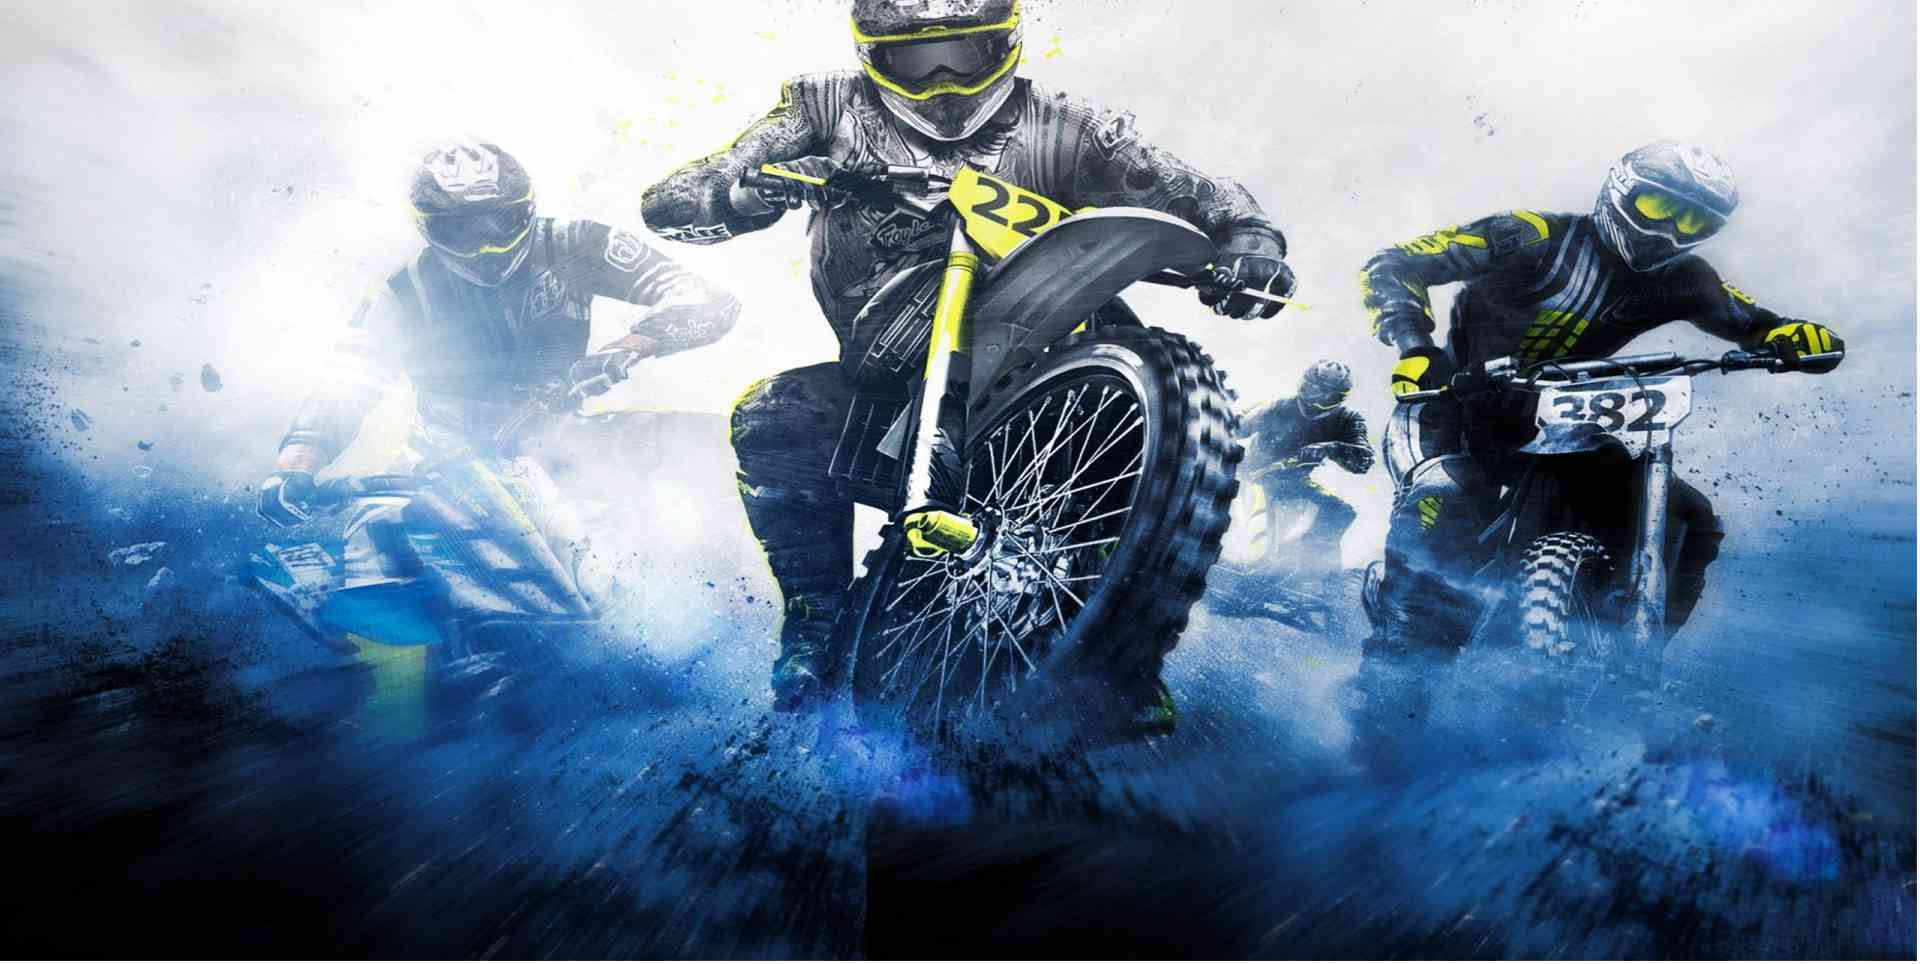 watch-ironman-national-motocross-live